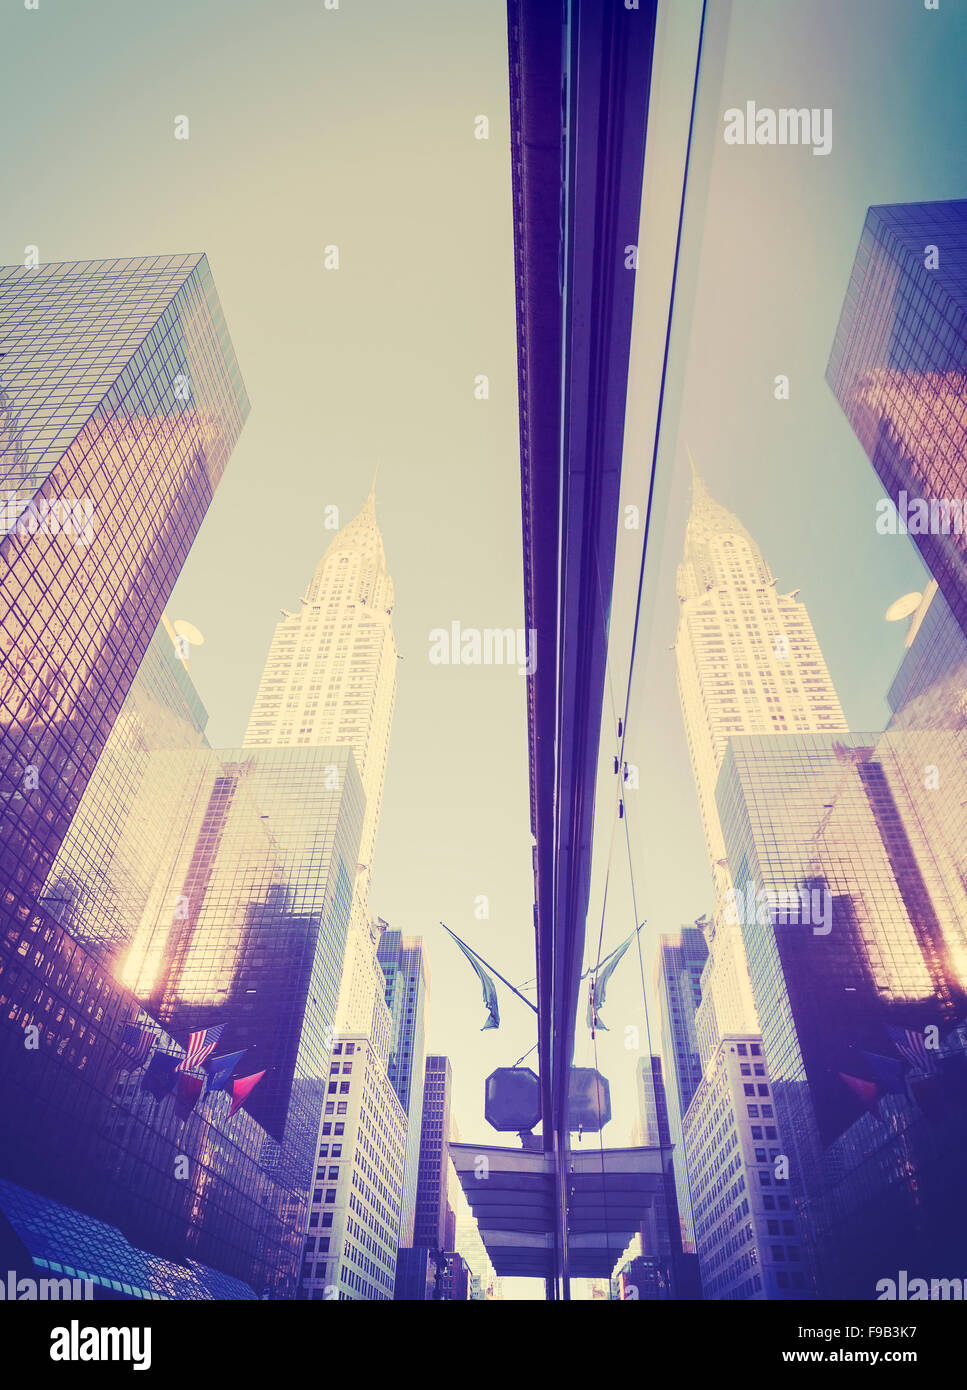 Vintage style Manhattan skyscrapers reflected in windows, NYC, USA. - Stock Image